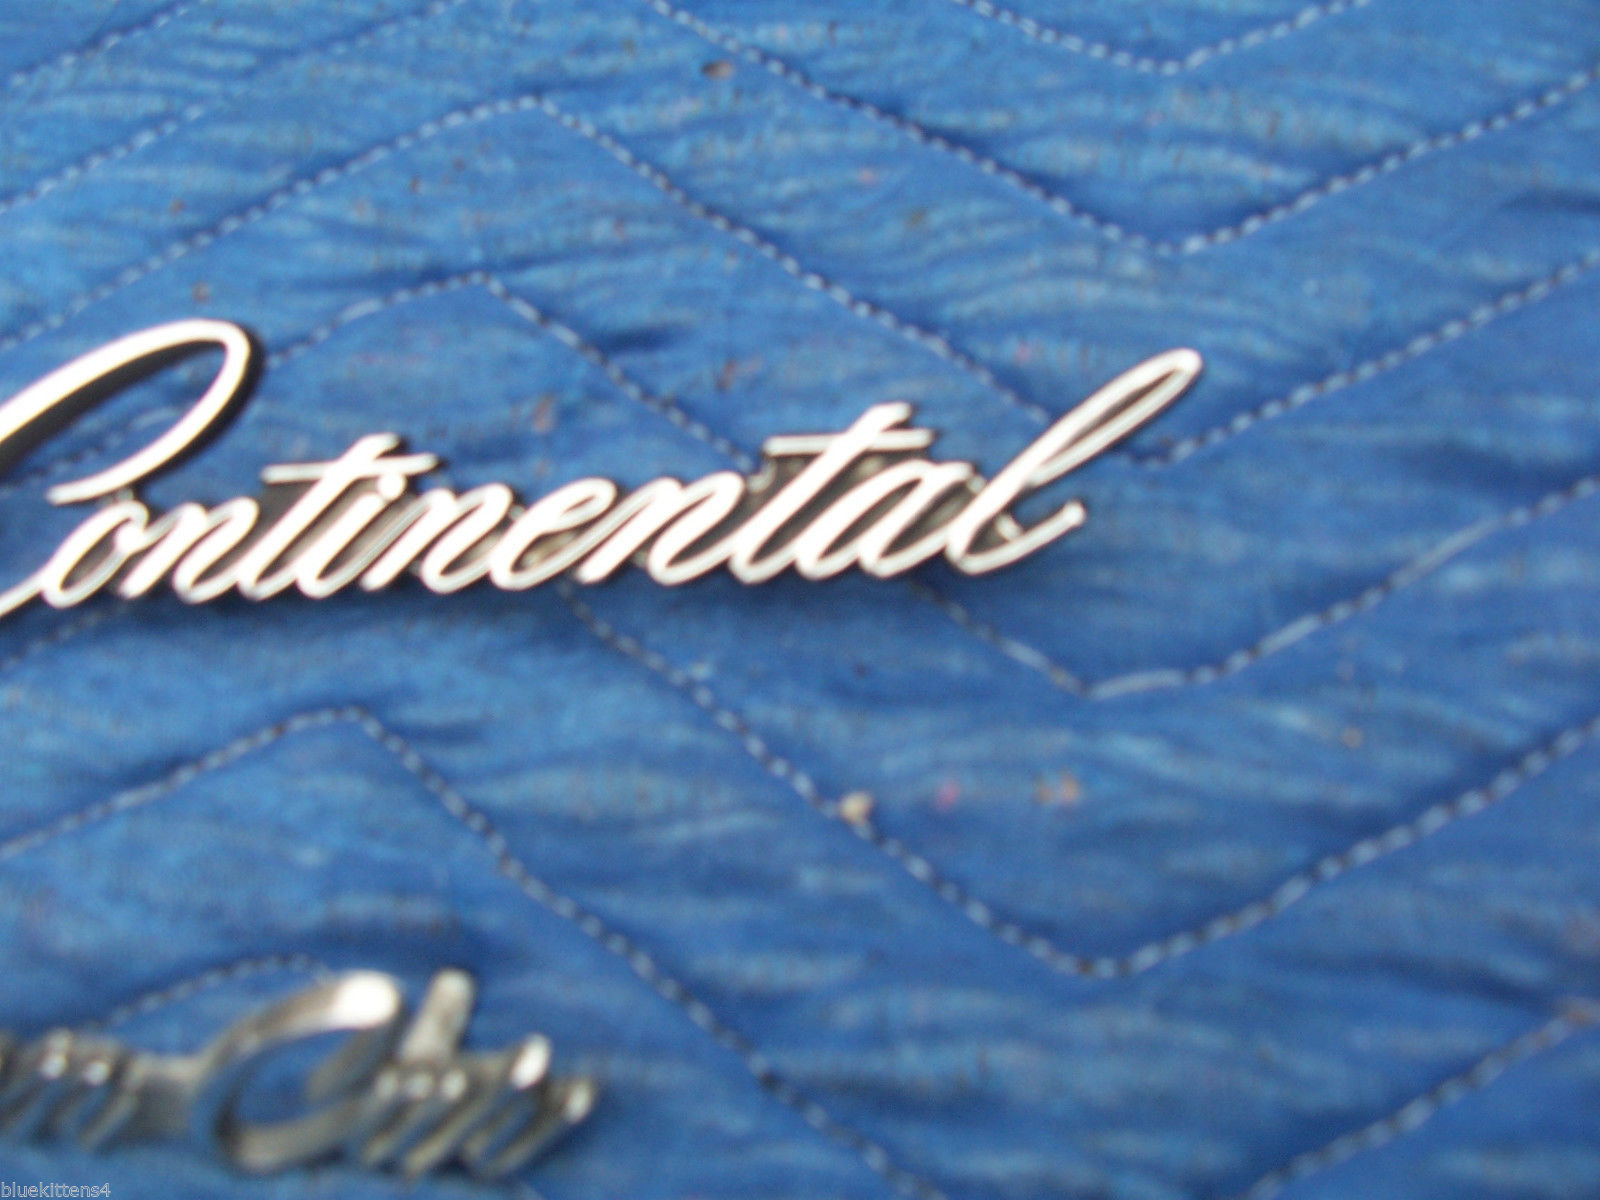 1978 1979 CONTINENTAL TOWNCAR FENDER TRIM EMBLEM ORNAMENT OEM USED LINCOLN PART image 4